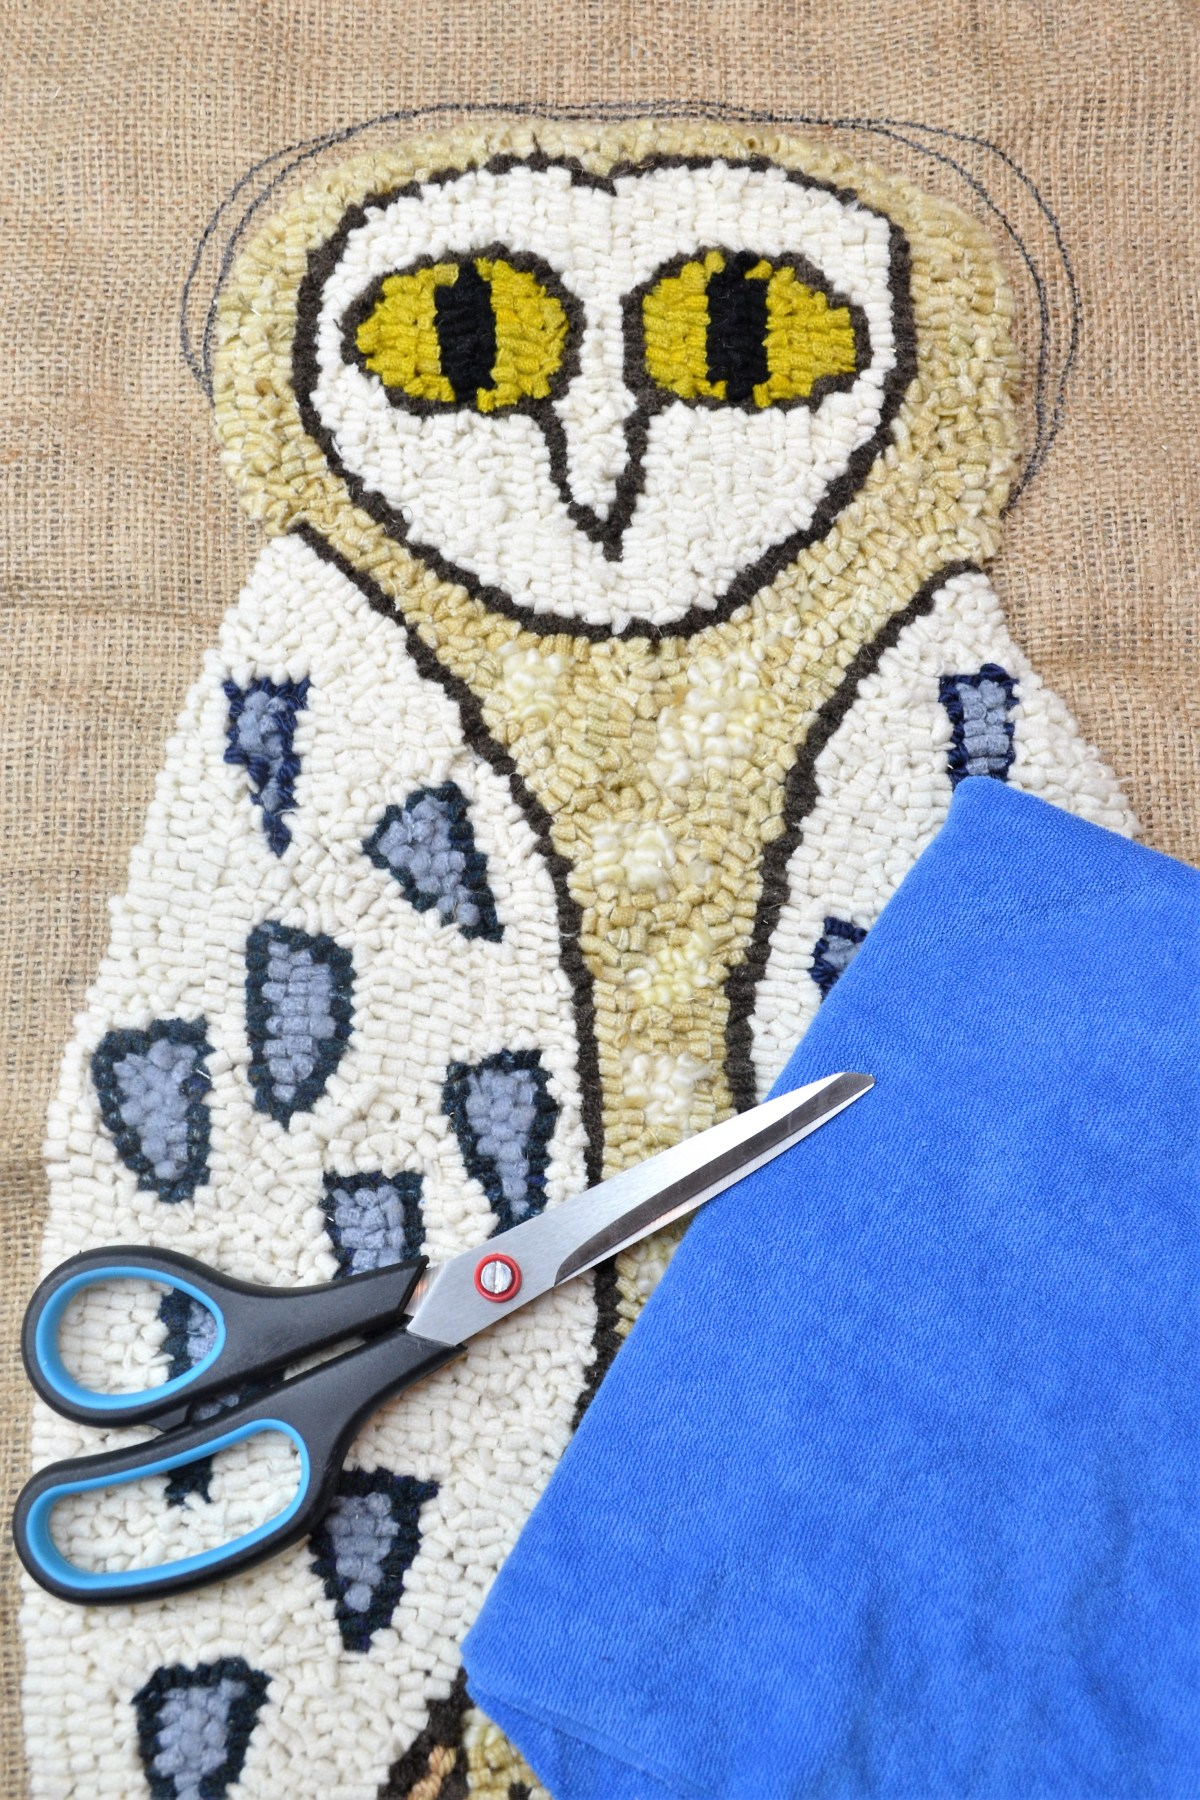 Rug Hooking: How to Make Your Rug Hooking Patterns into a Pillow! - supplies